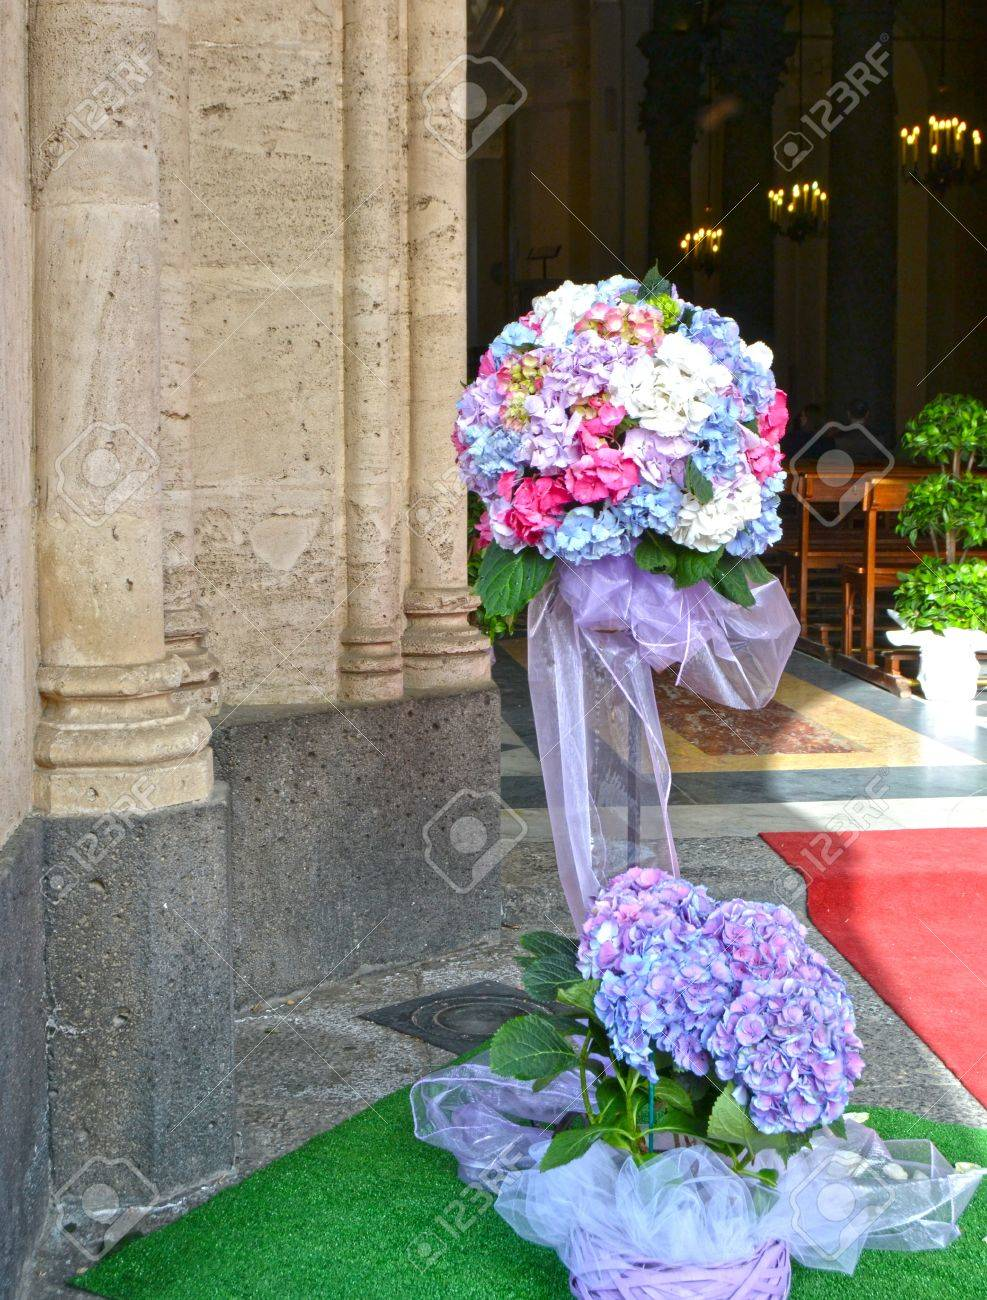 Floral Decorations At The Entrance Of The Church Stock Photo